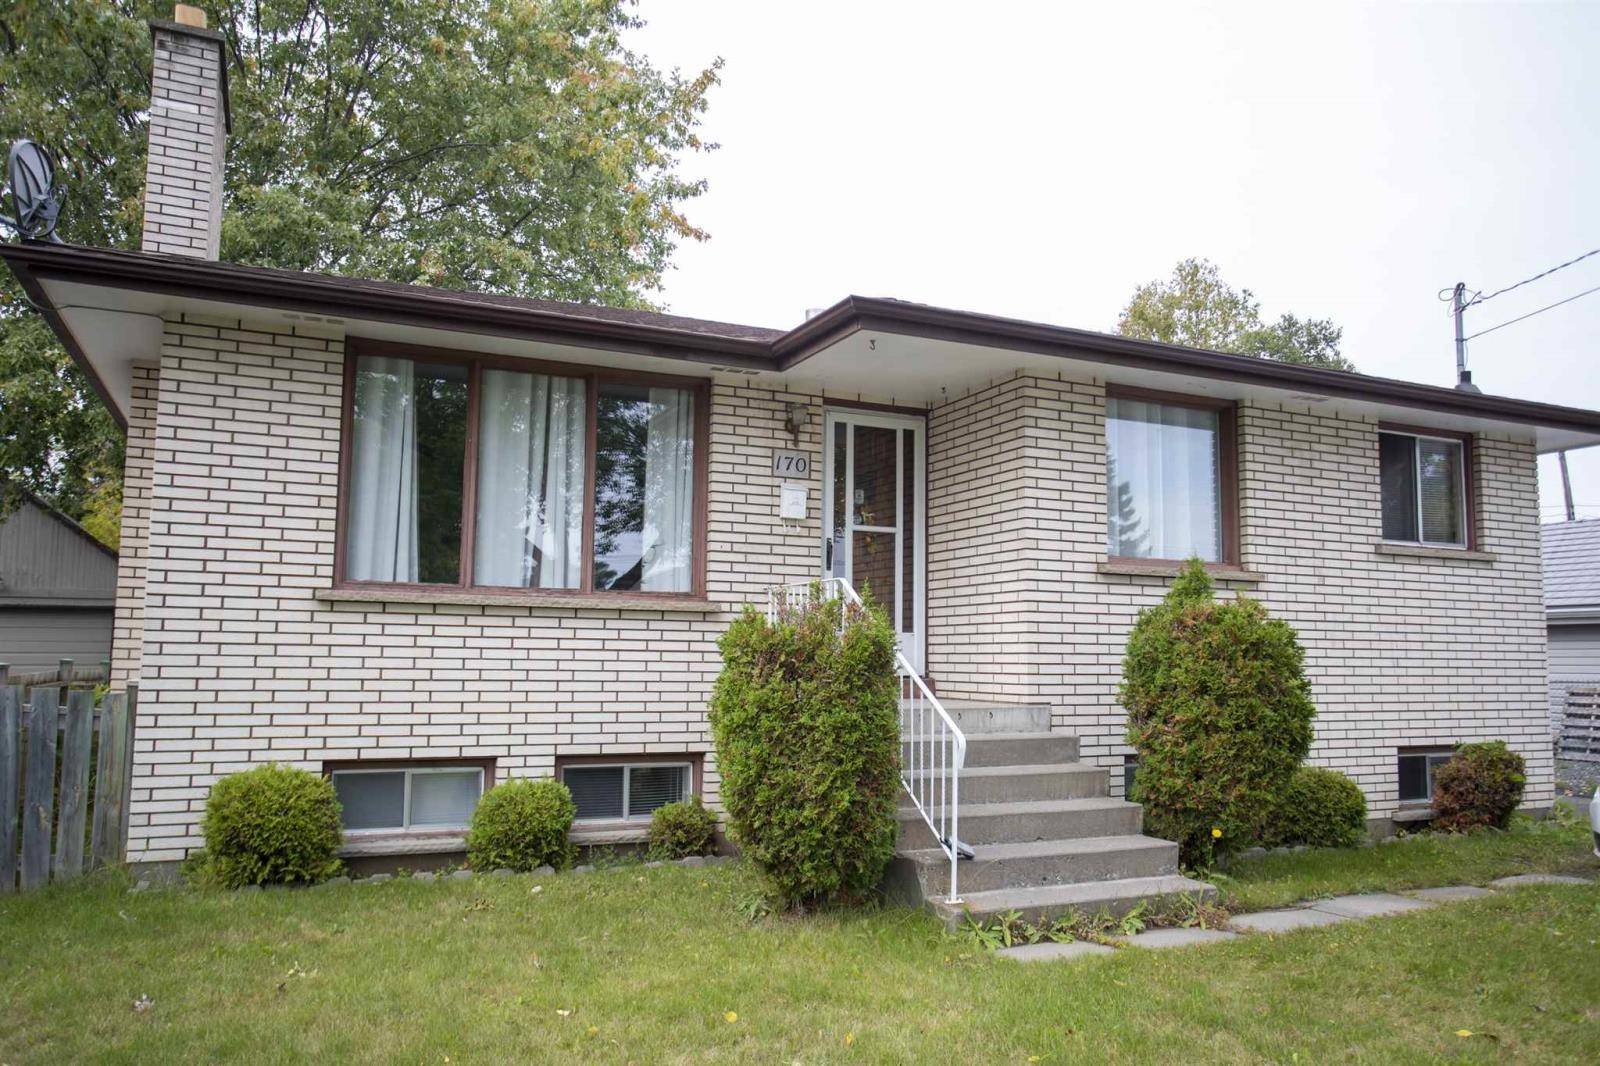 House for sale at 170 Windemere Ave N Thunder Bay Ontario - MLS: TB193183